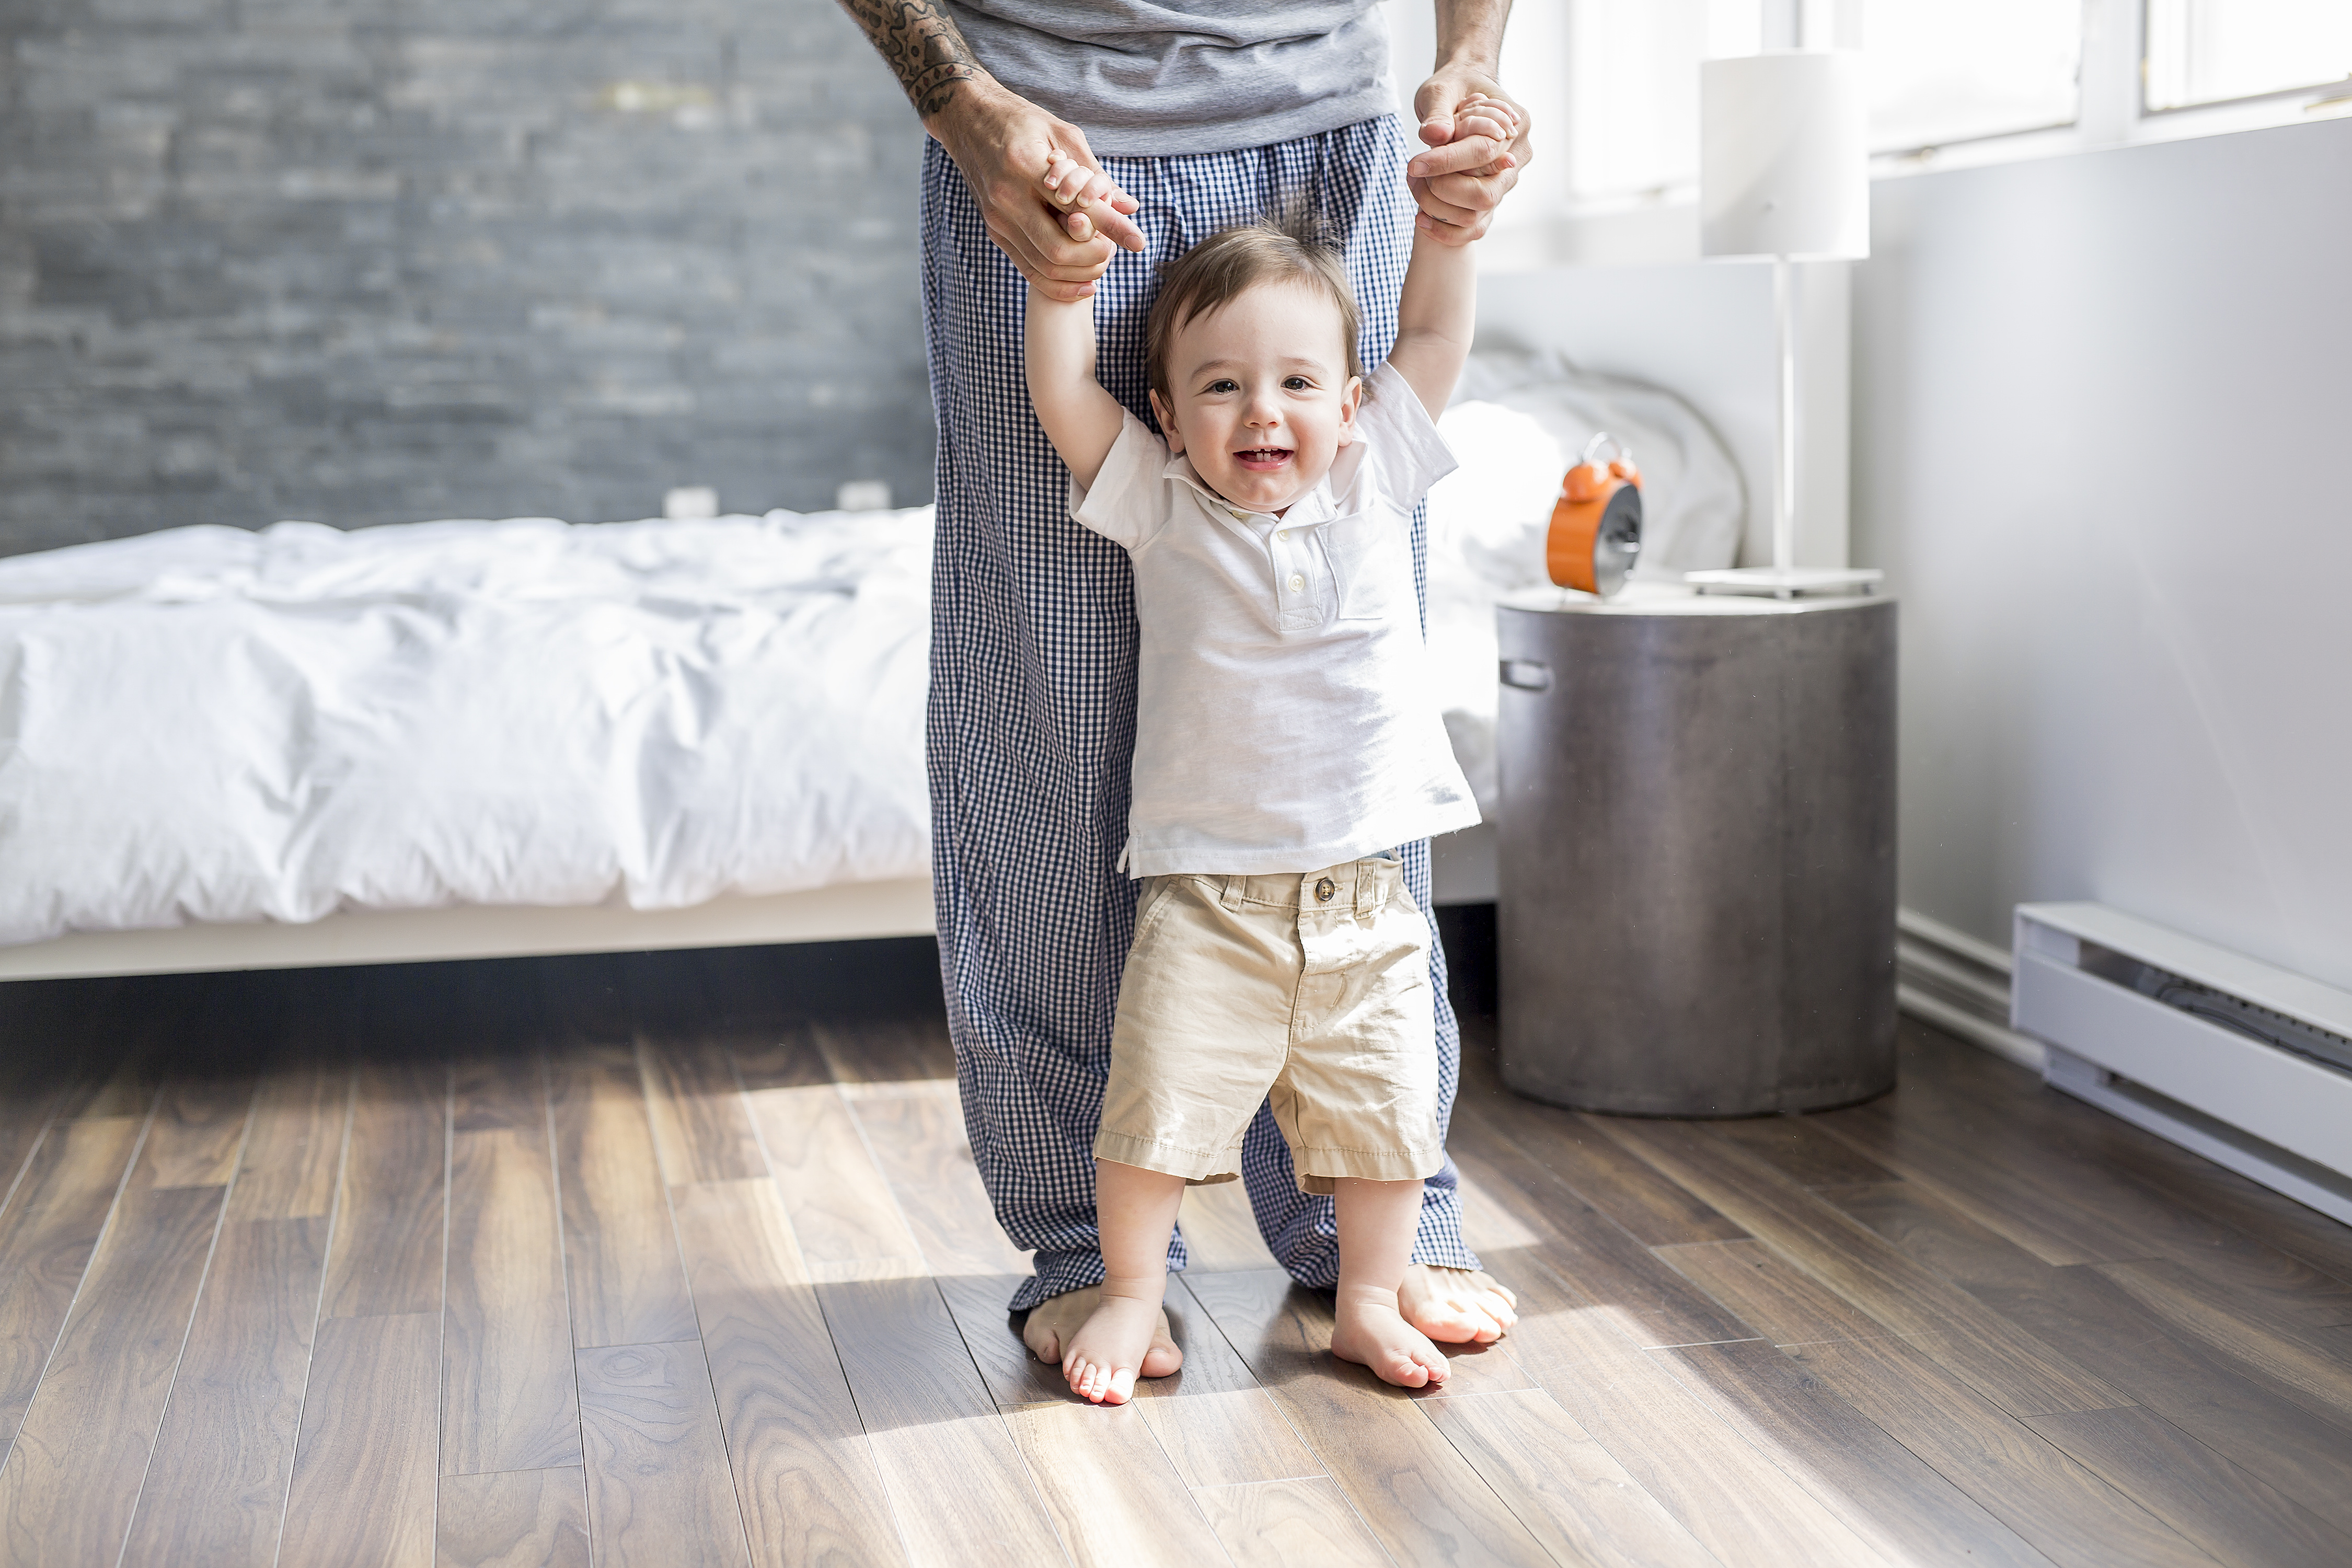 Reviews<br /><br /> from Early's Flooring Specialists & More in Amissville, VA